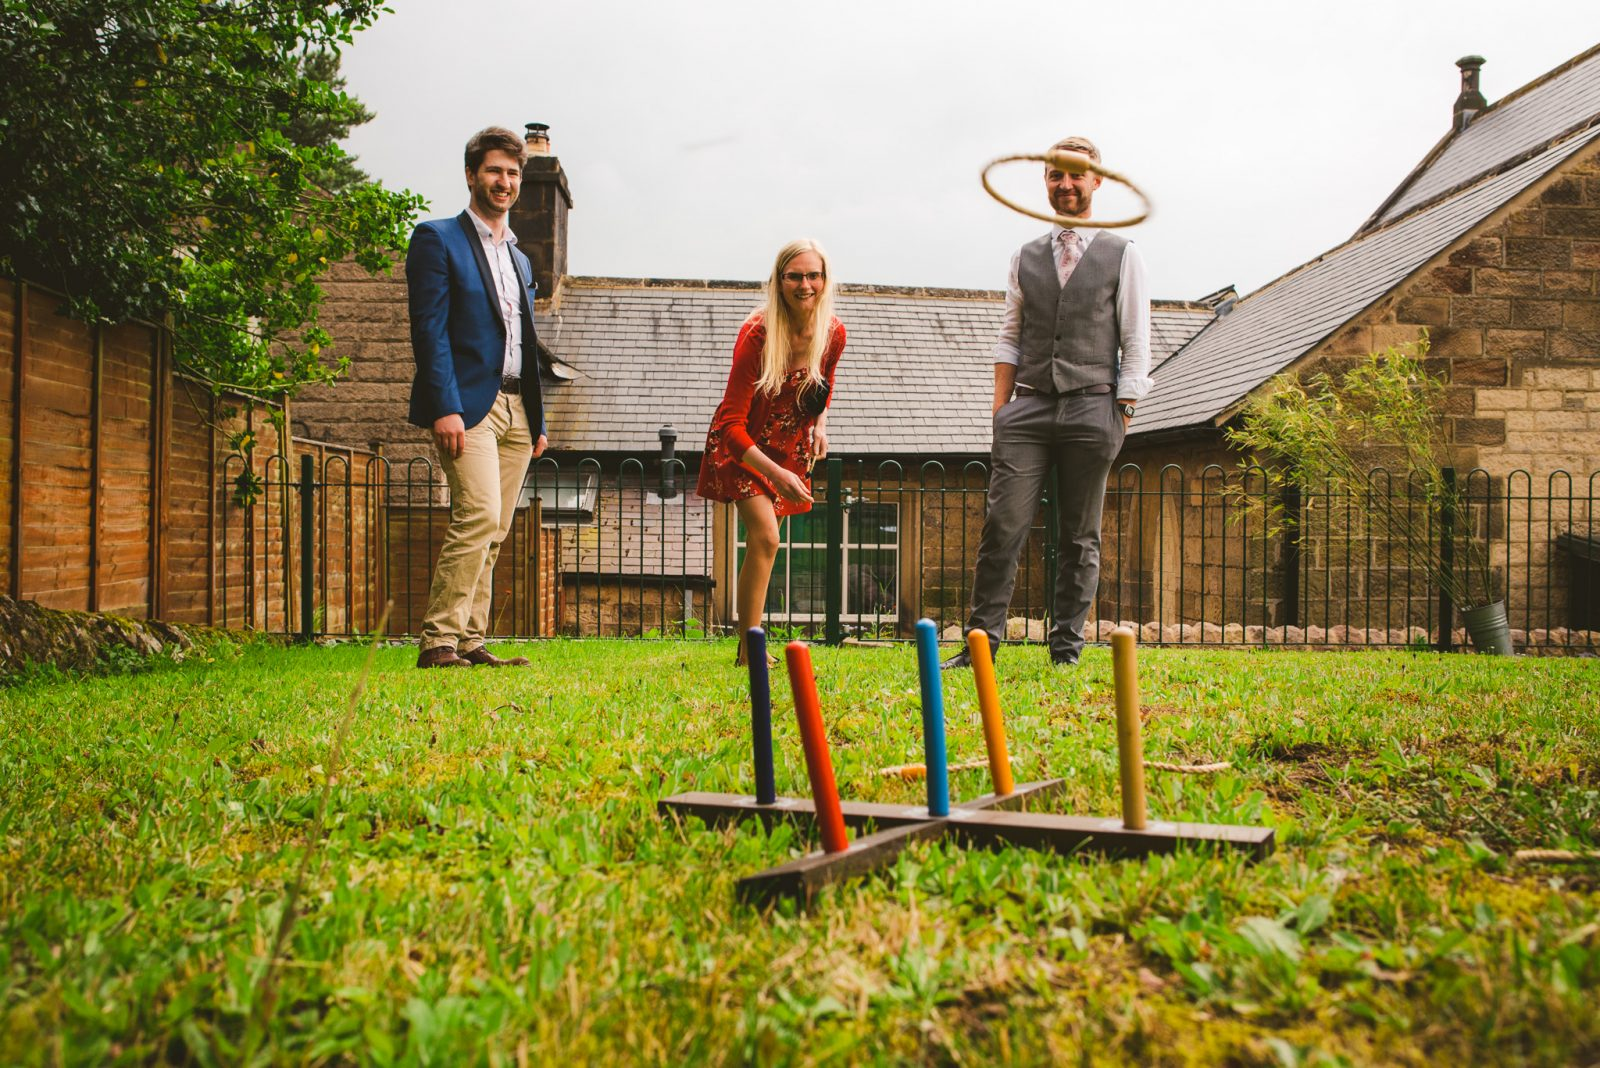 DIY Village Hall Wedding lawn games